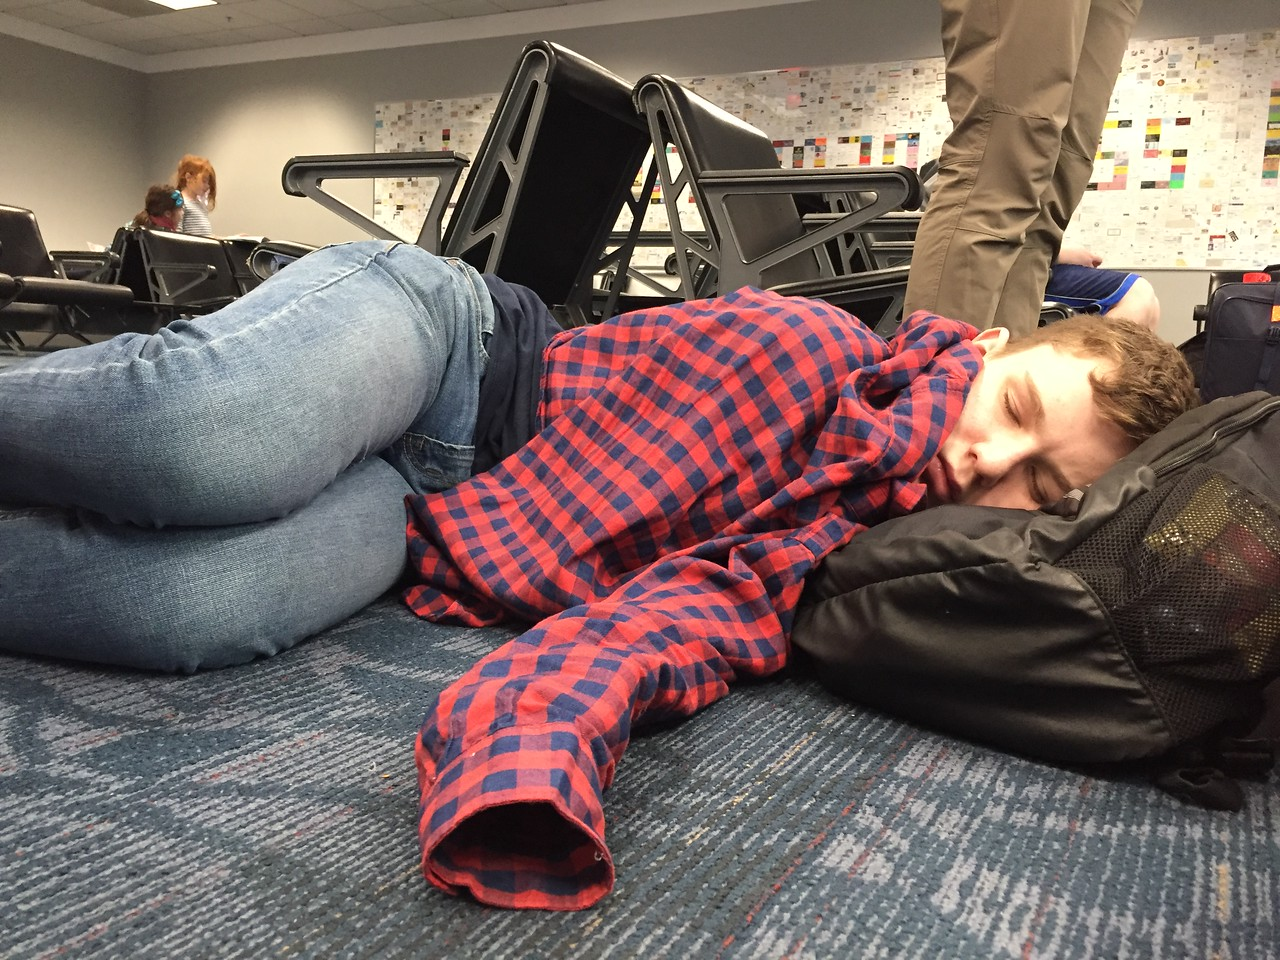 DAY 1<br /> Ceremonious picture of Sam Caley asleep on an airport floor.<br /> (Look at my other two mission trip galleries, you'll see what I mean)